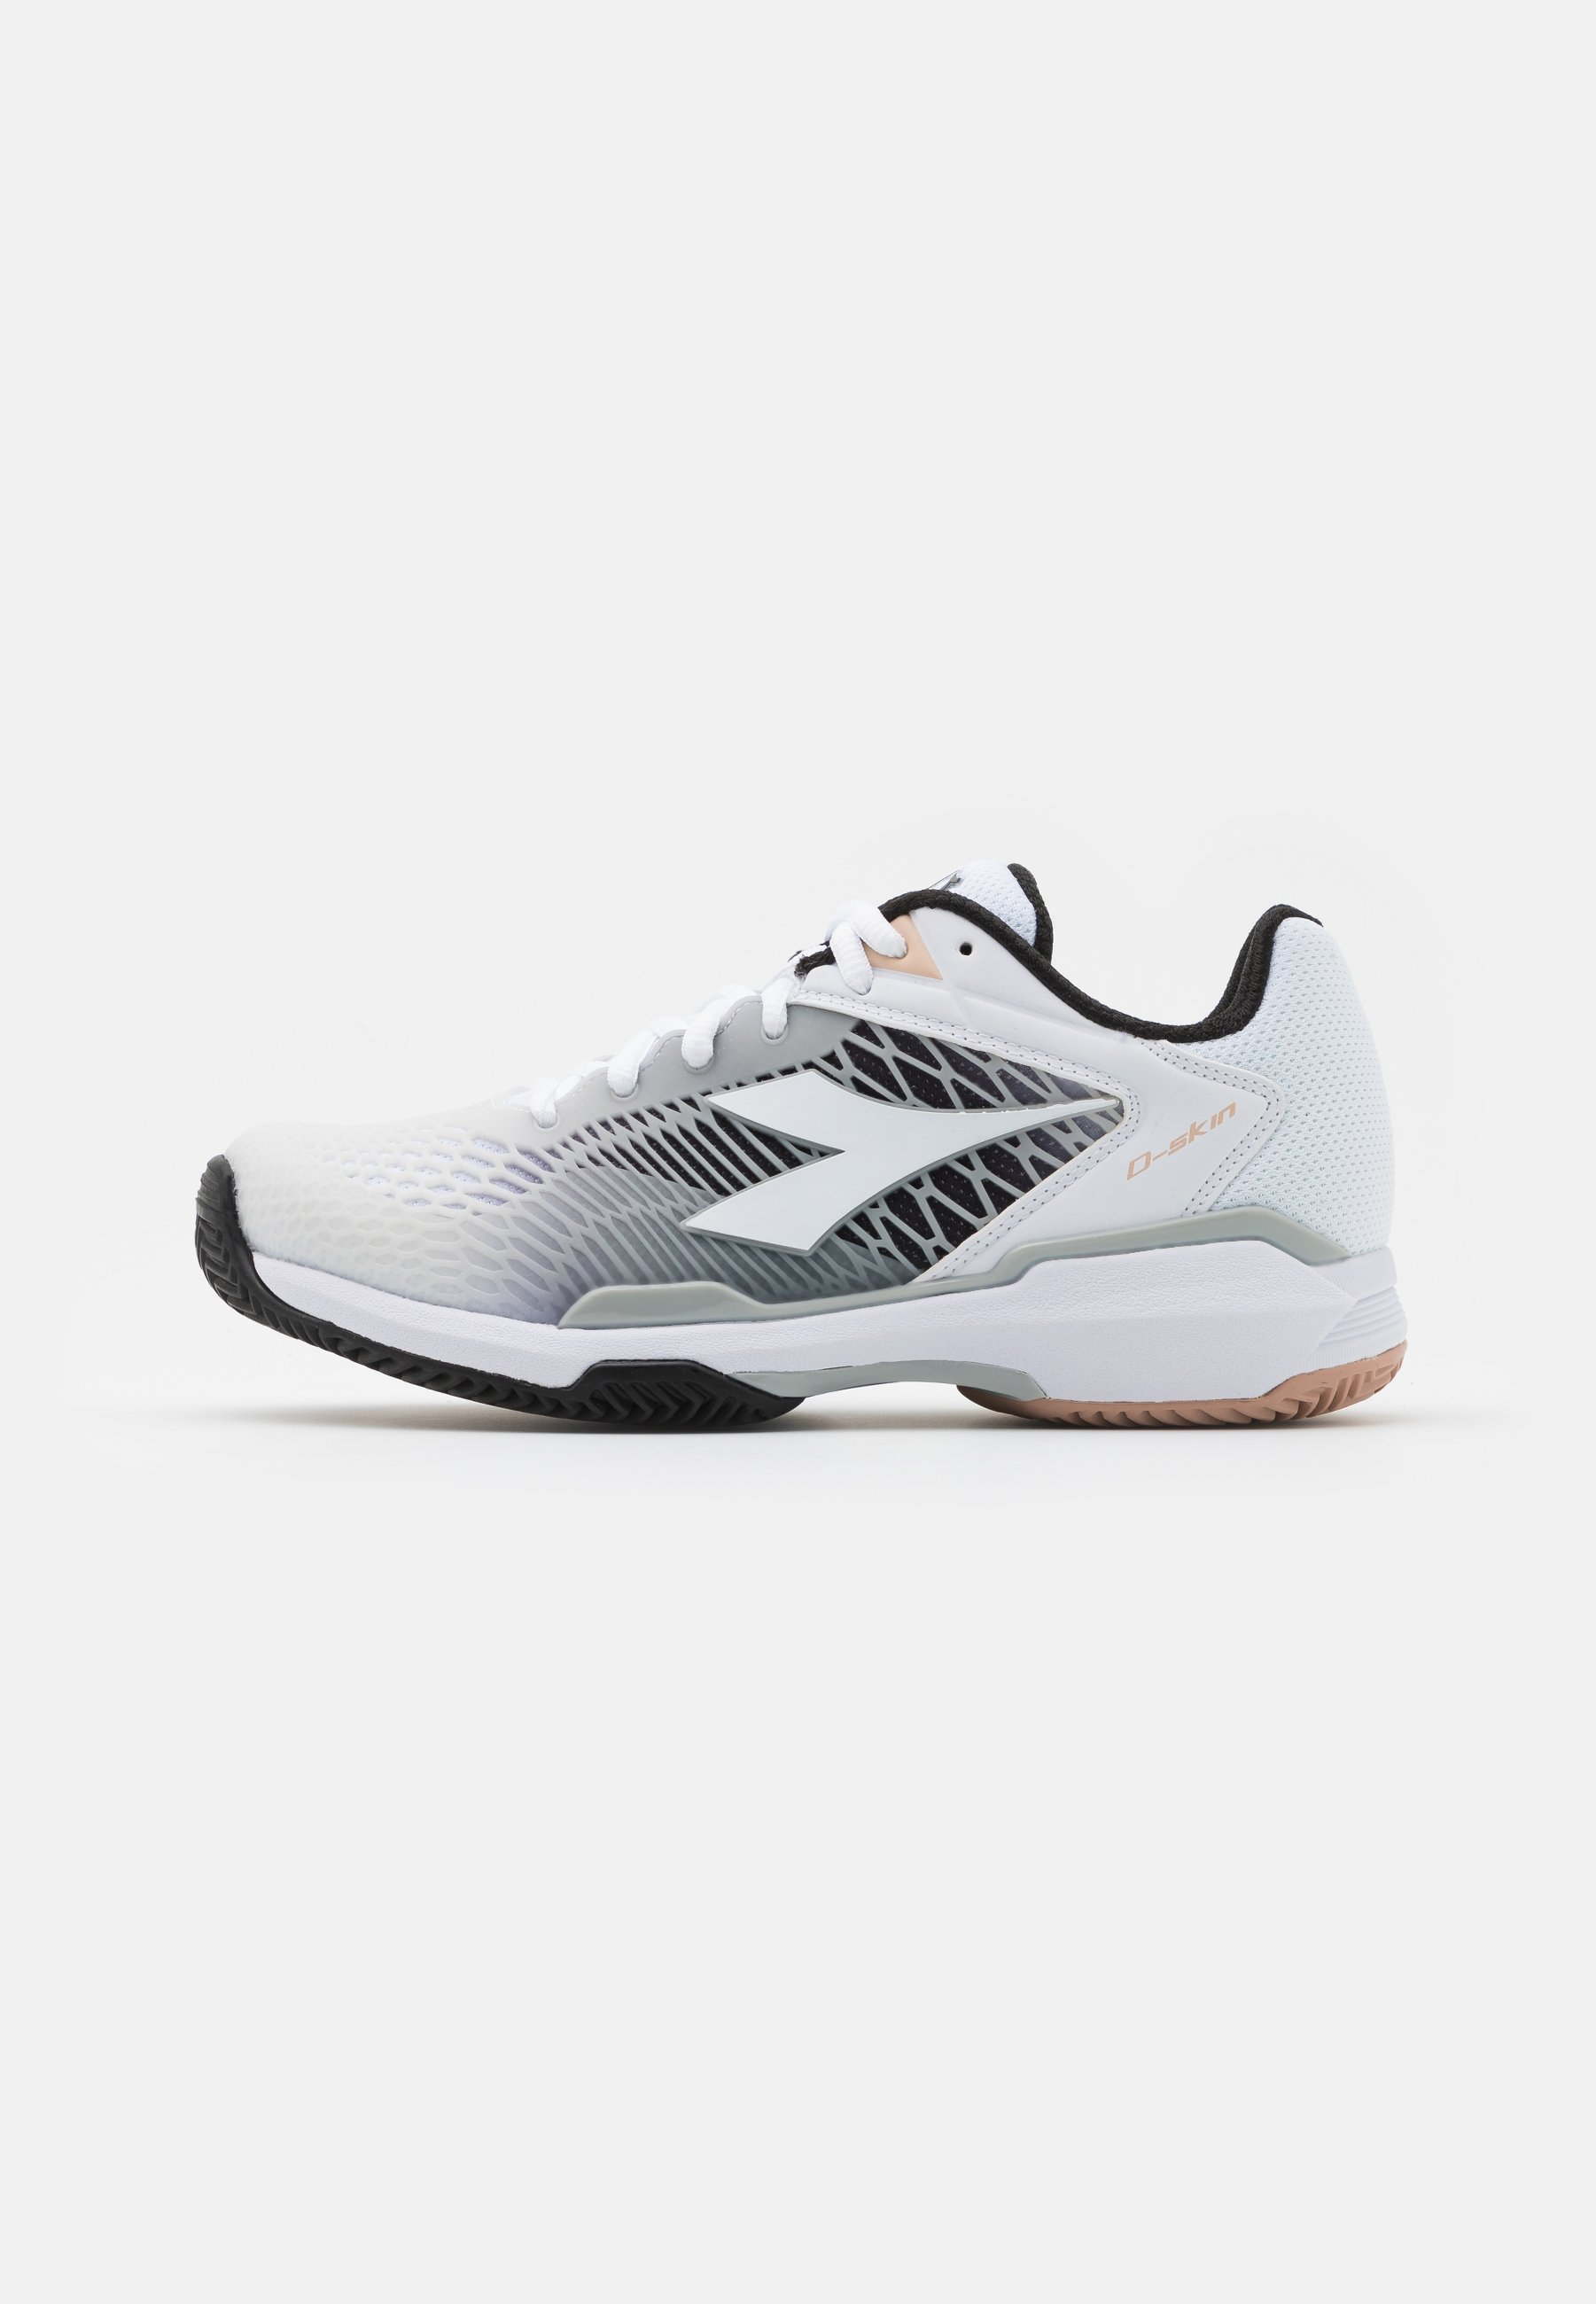 Femme SPEED COMPETITION 6+CLAY - Chaussures de tennis pour terre-battueerre battue